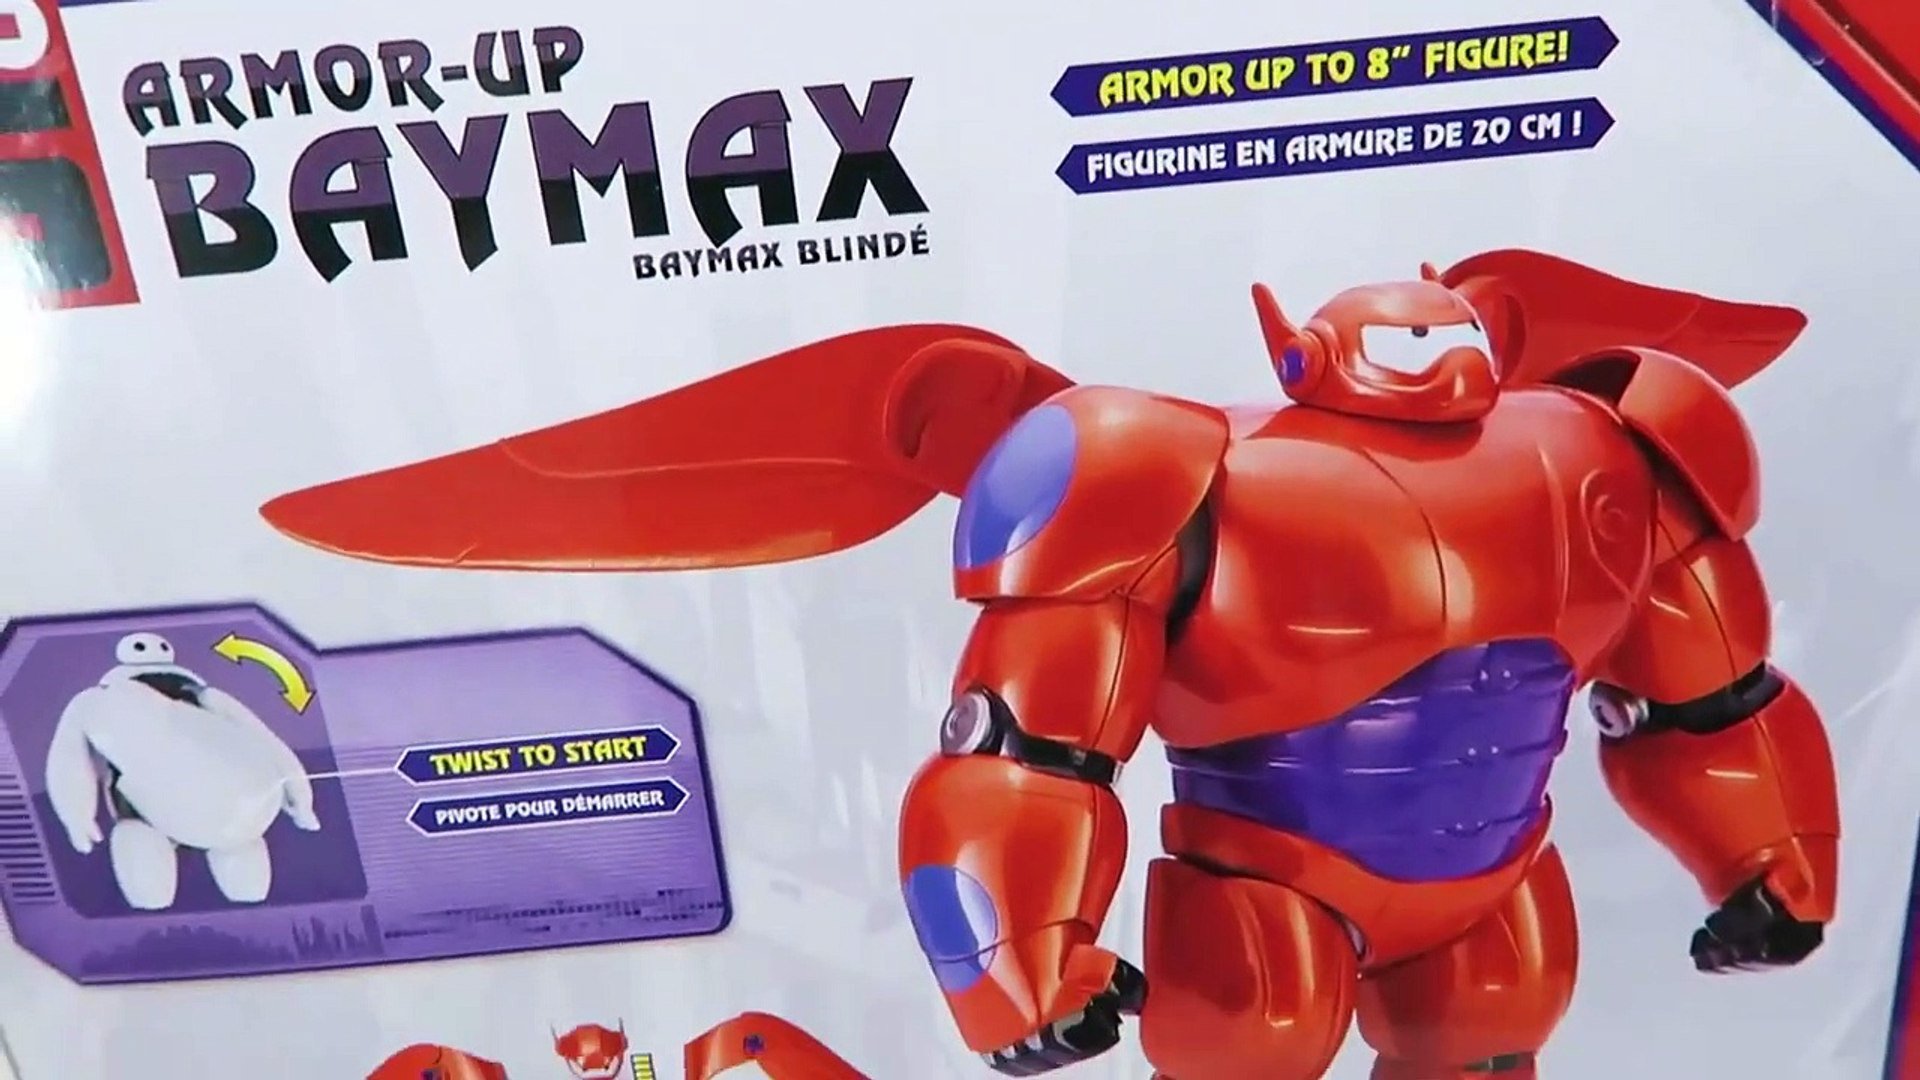 Baymax Armor Up Action Figure Disney Big Hero 6 Playset Video Dailymotion